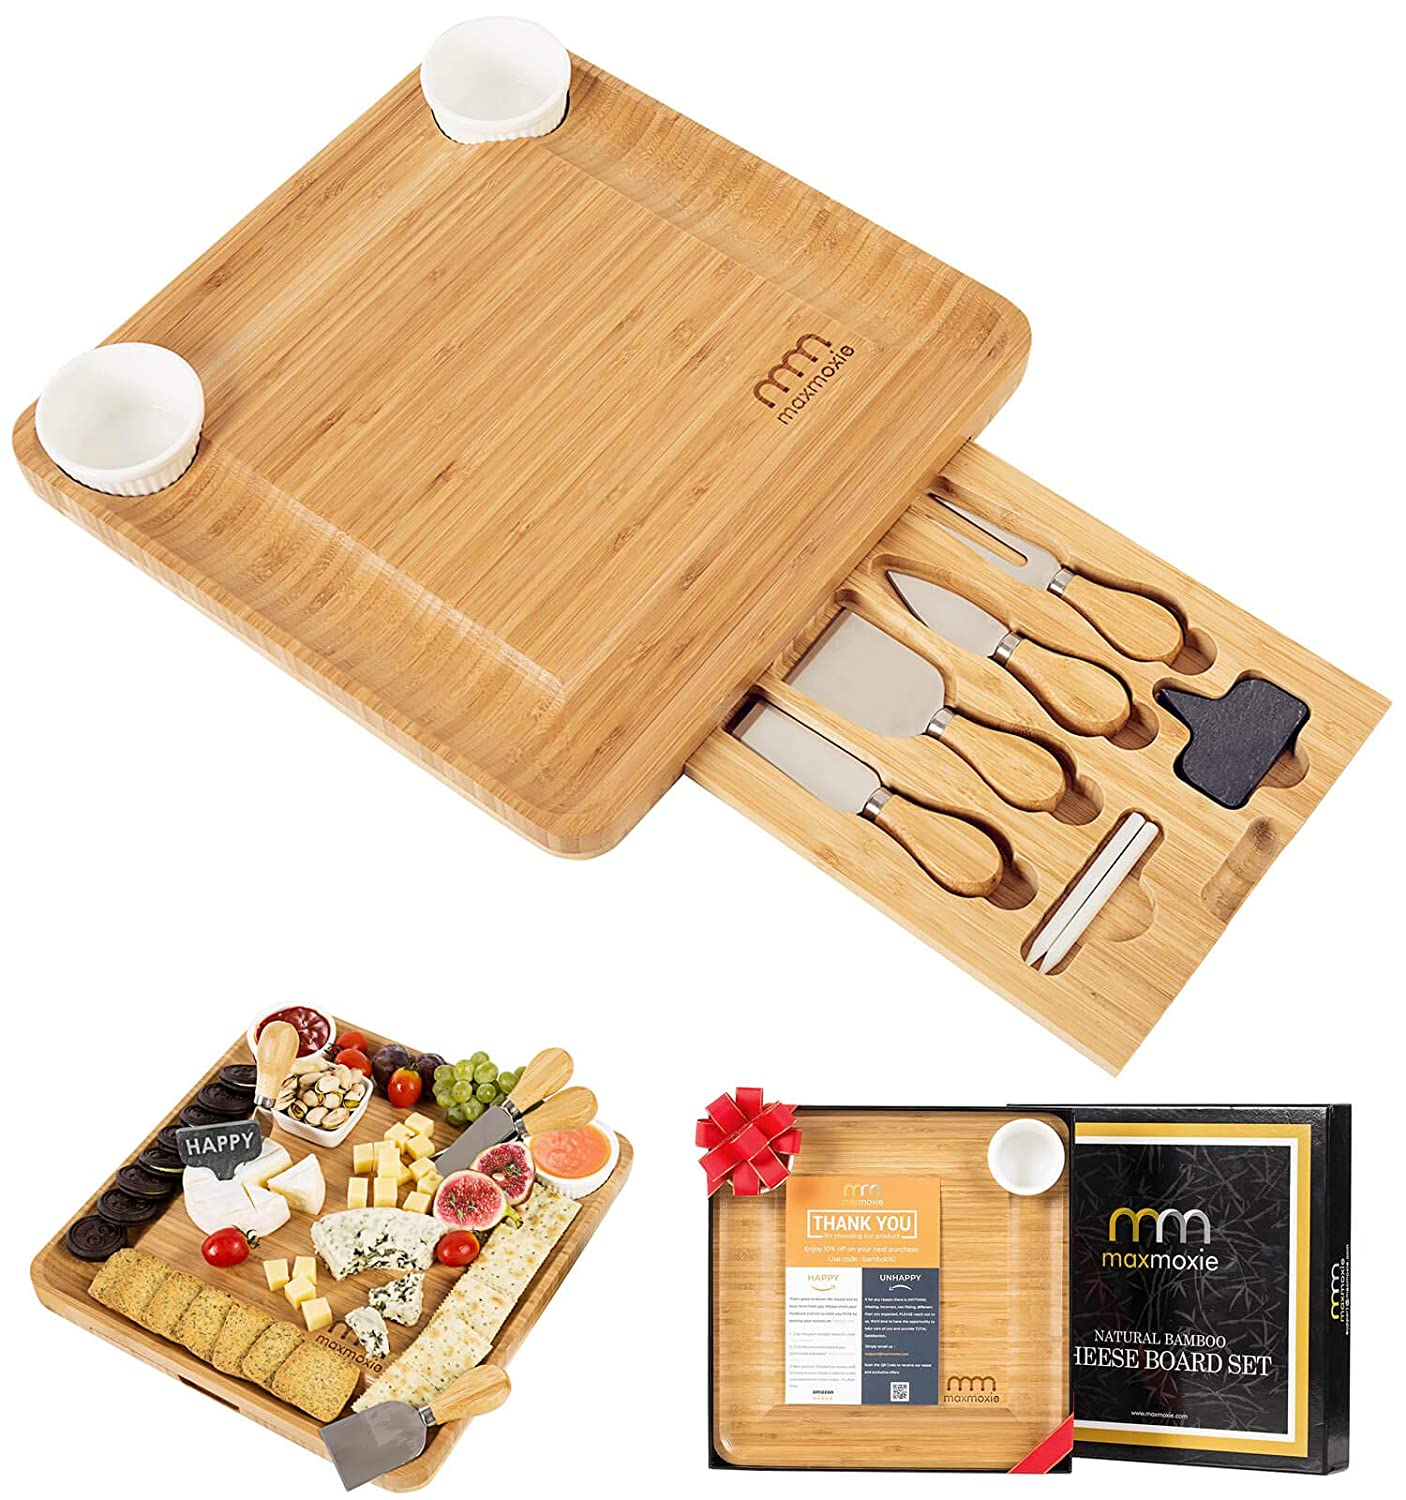 Cheese Board and Cutlery Set (Top Quality Elegant Packaging) Unique Bamboo Charcuterie Platter and Serving Tray for Wine, Cracker, Brie and Meat - Best Present for Mom, Hostess Valentine Birthday Gift